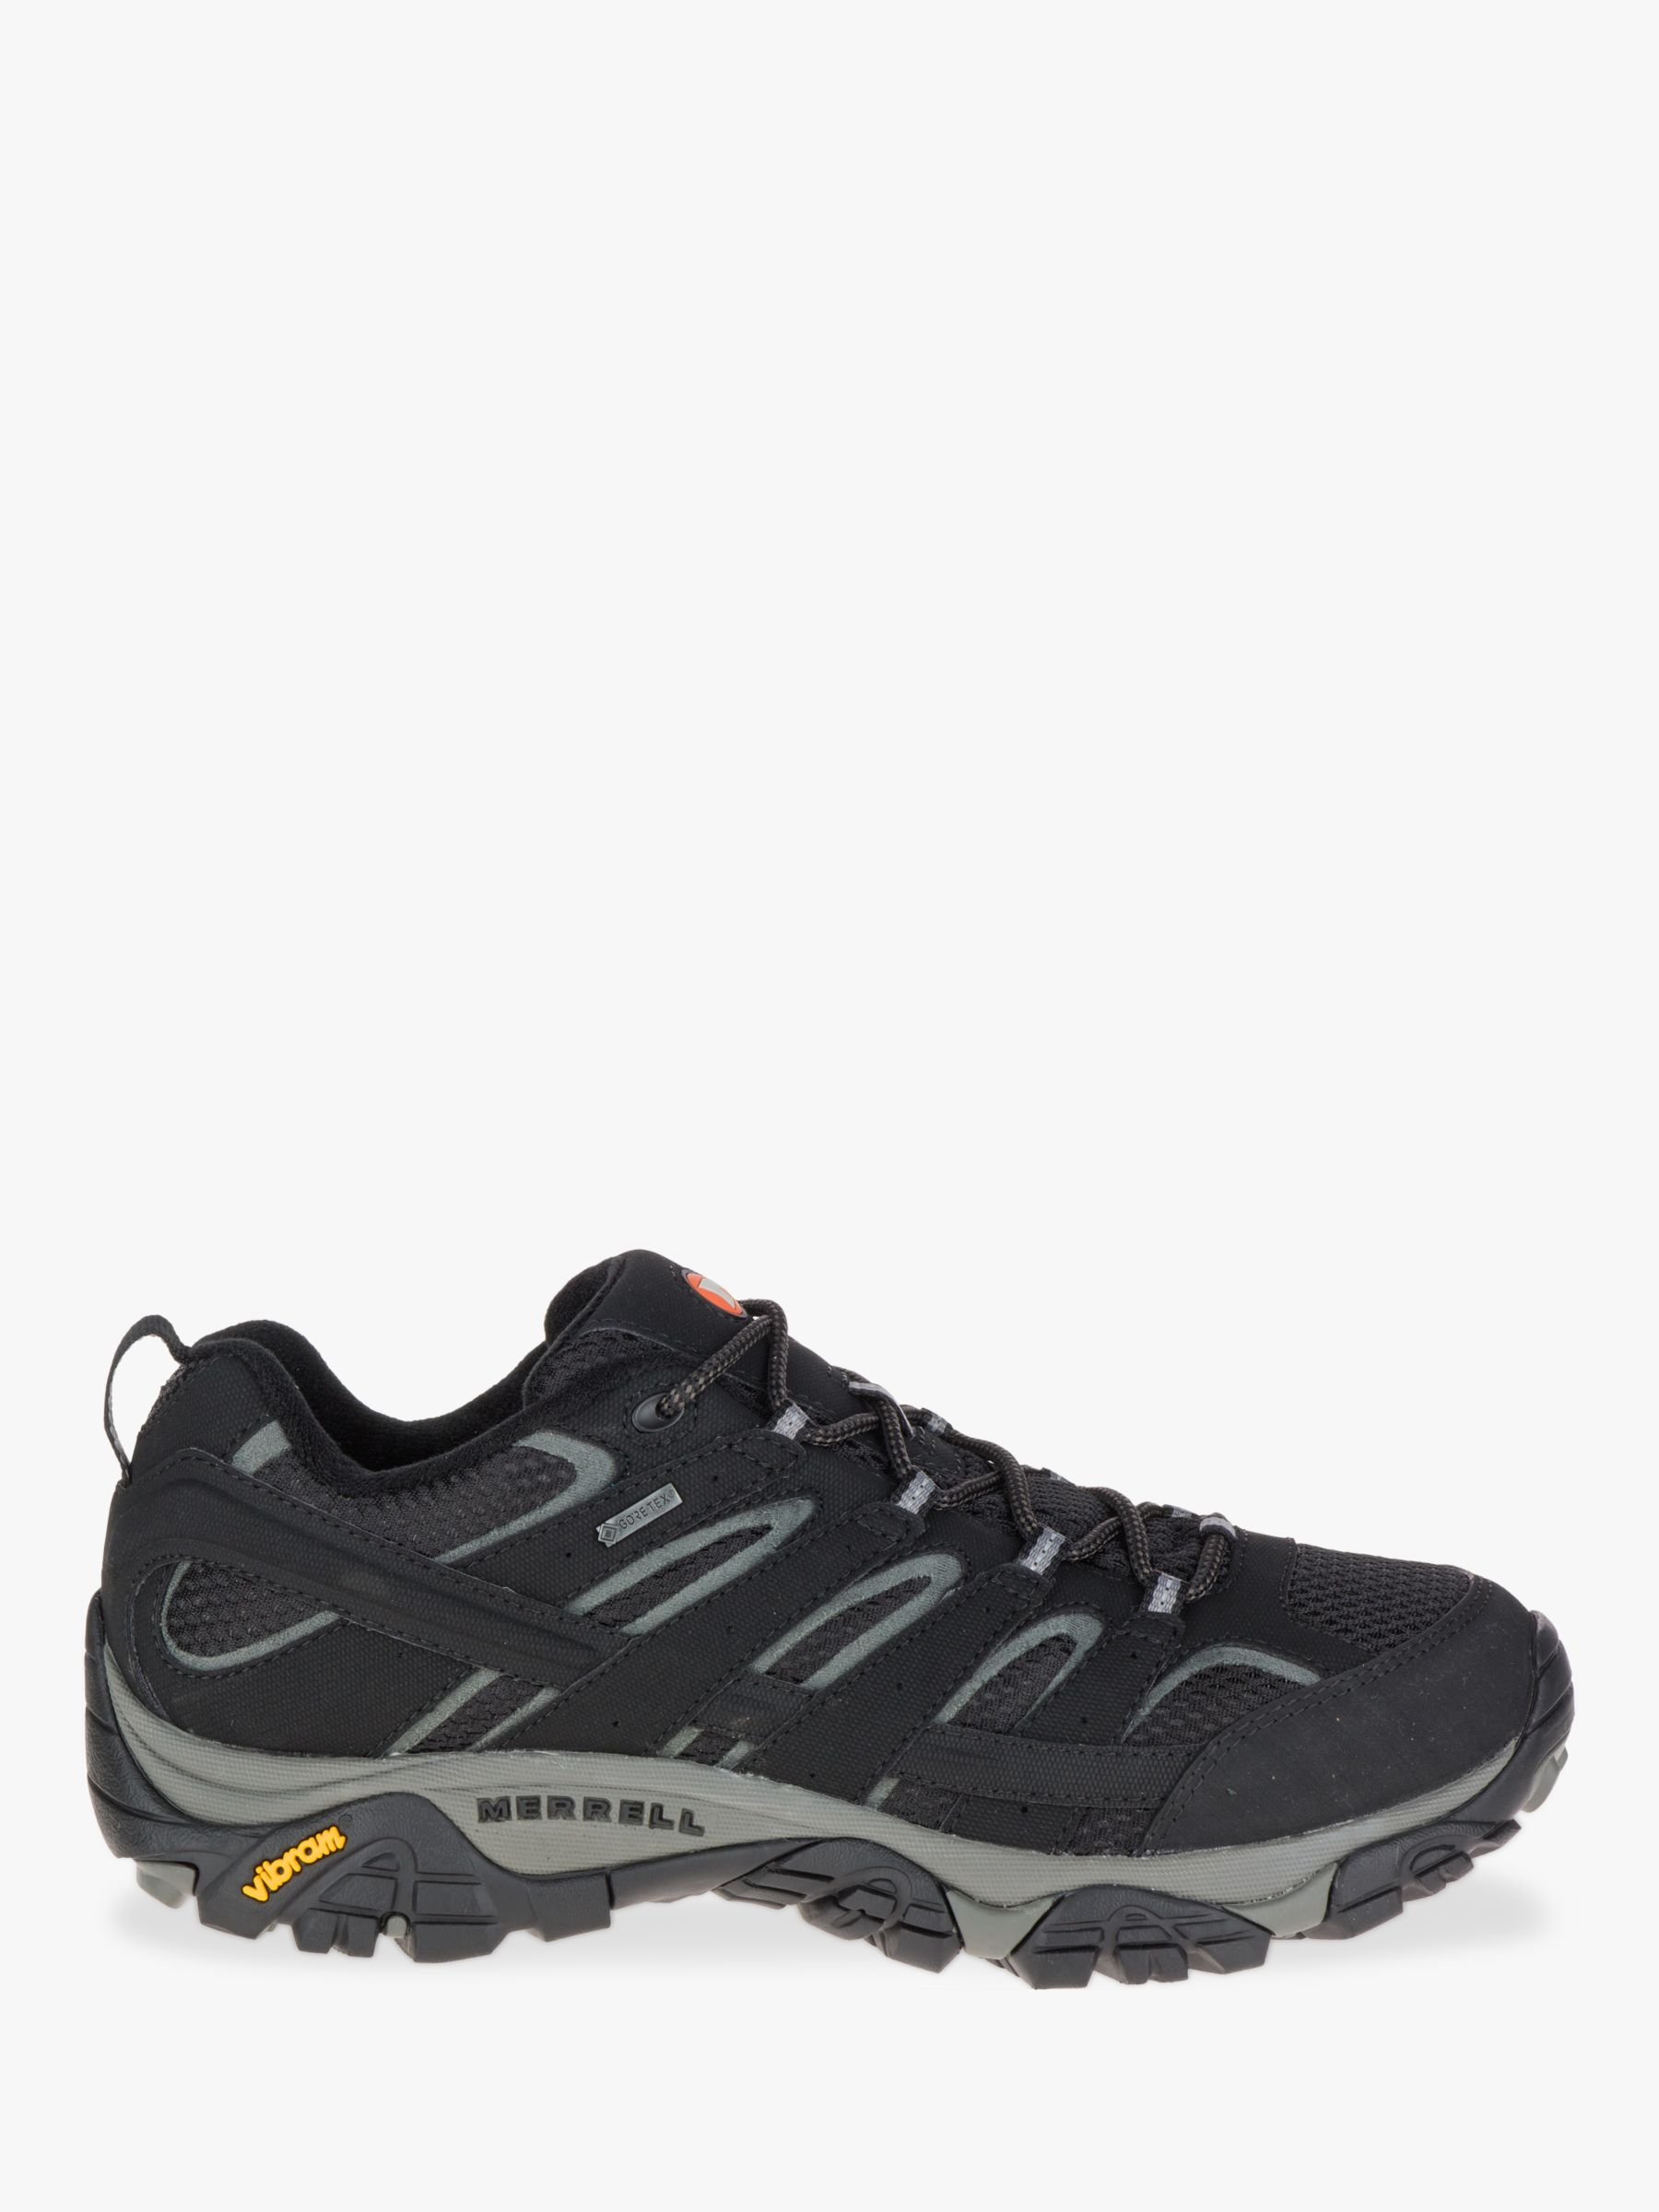 Merrell Merrell MOAB 2 Men's Waterproof Gore-Tex Hiking Shoes, Black